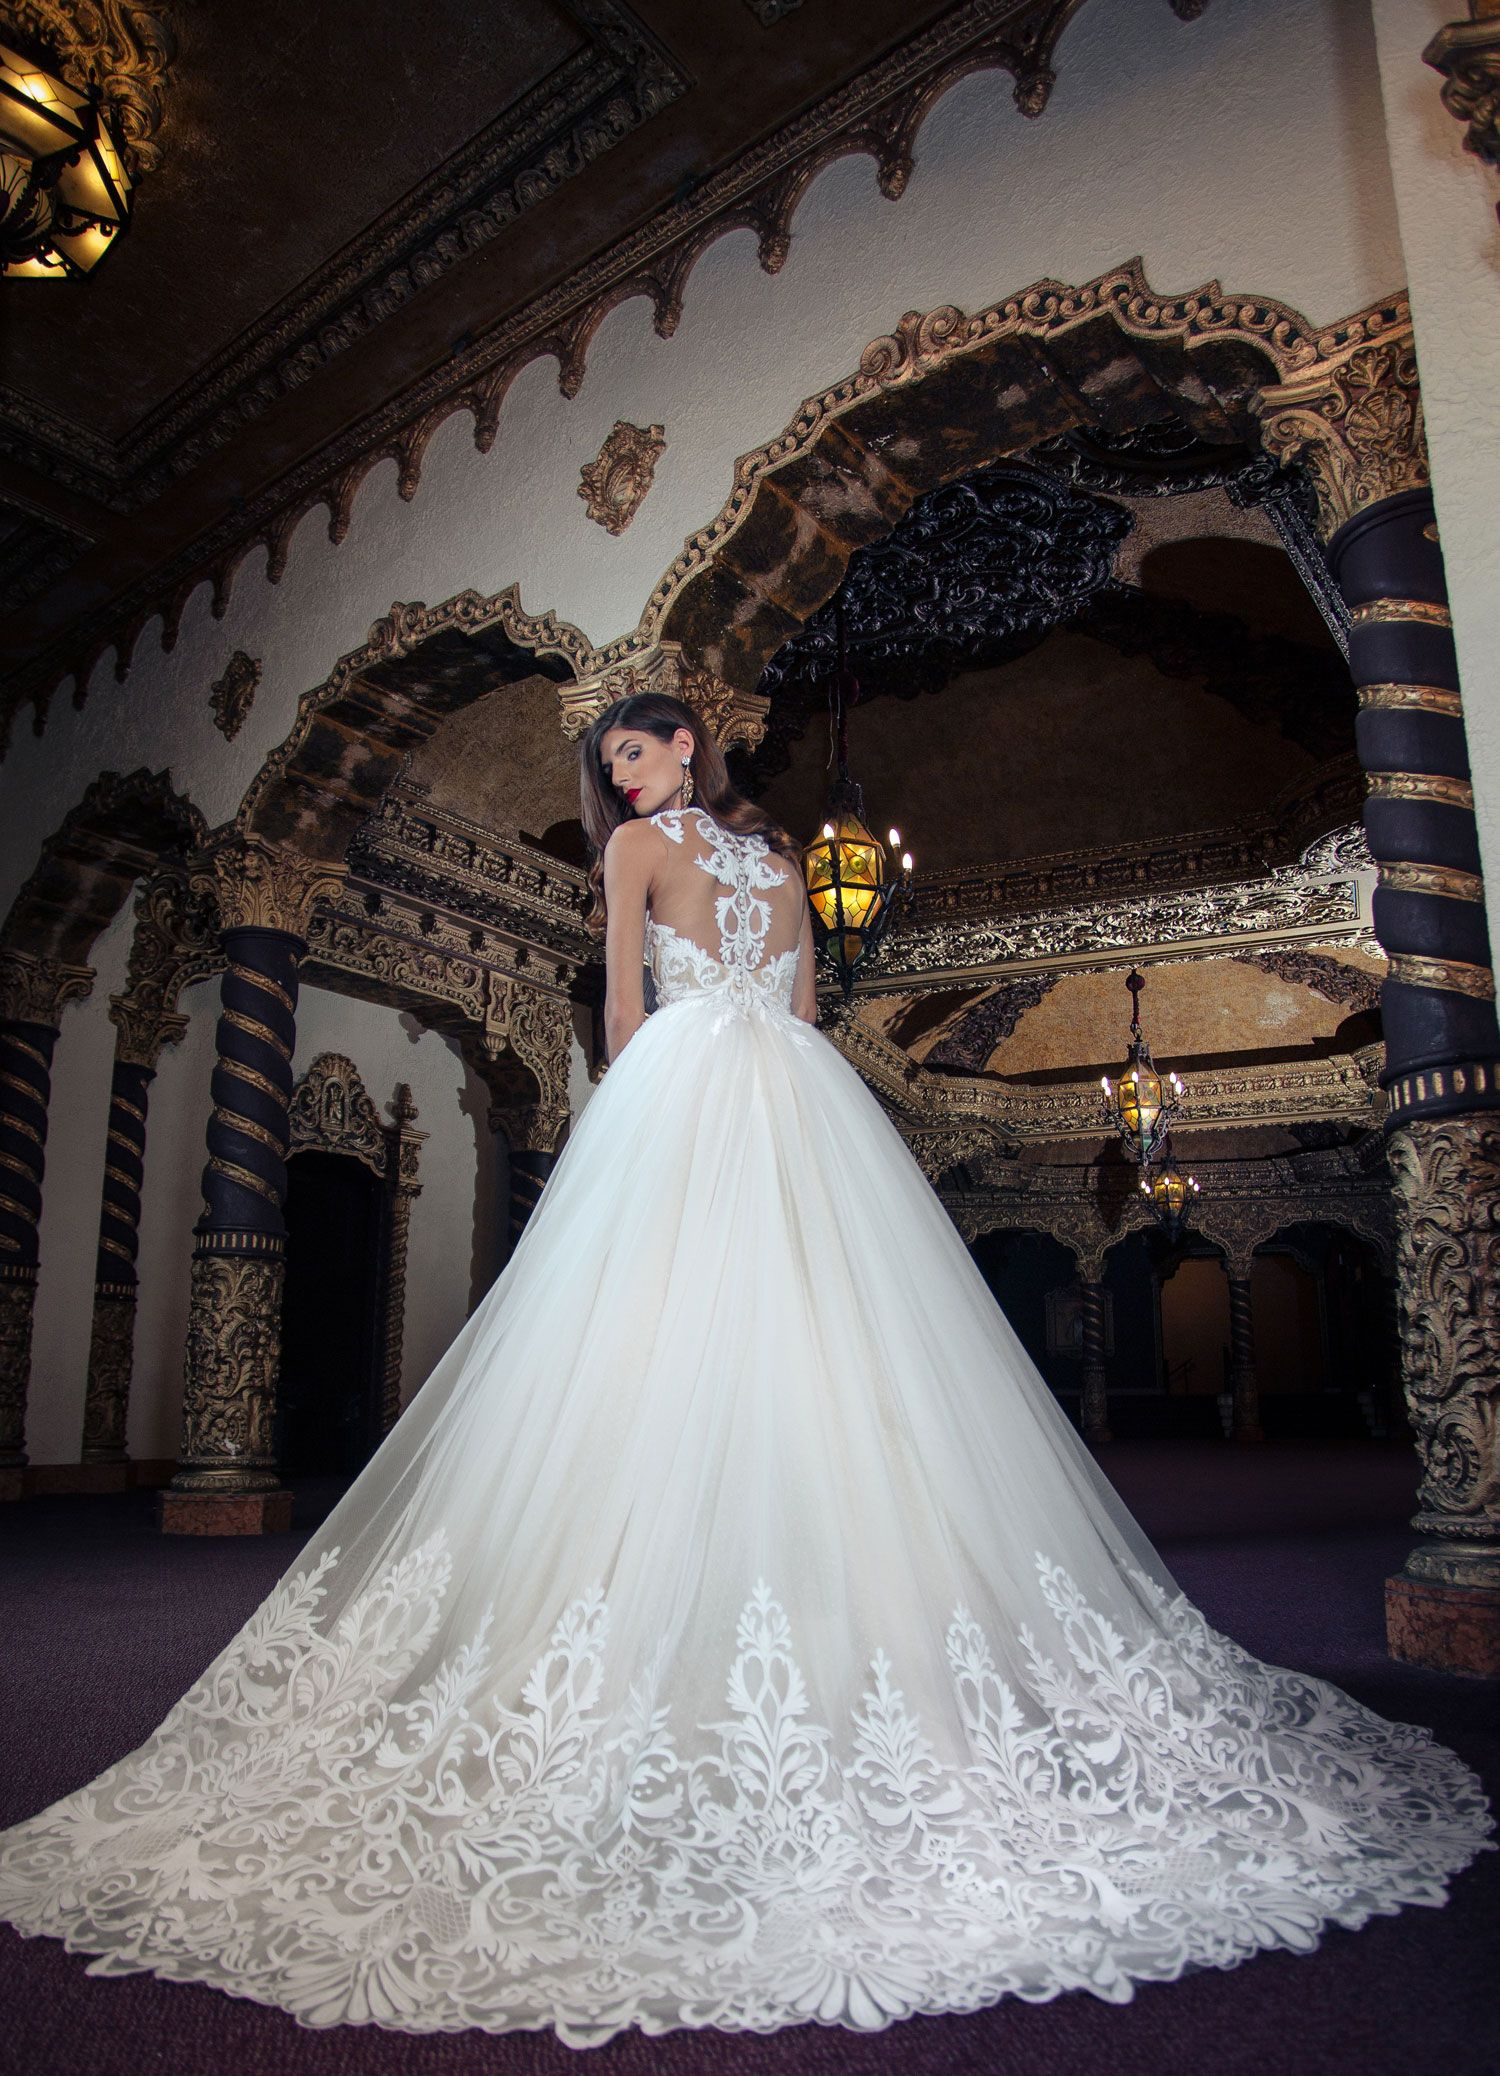 Yumi Katsura Eden Most Expensive Wedding Dress Gown Online Custom Embroidery: Expensive Wedding Dresses Online At Websimilar.org